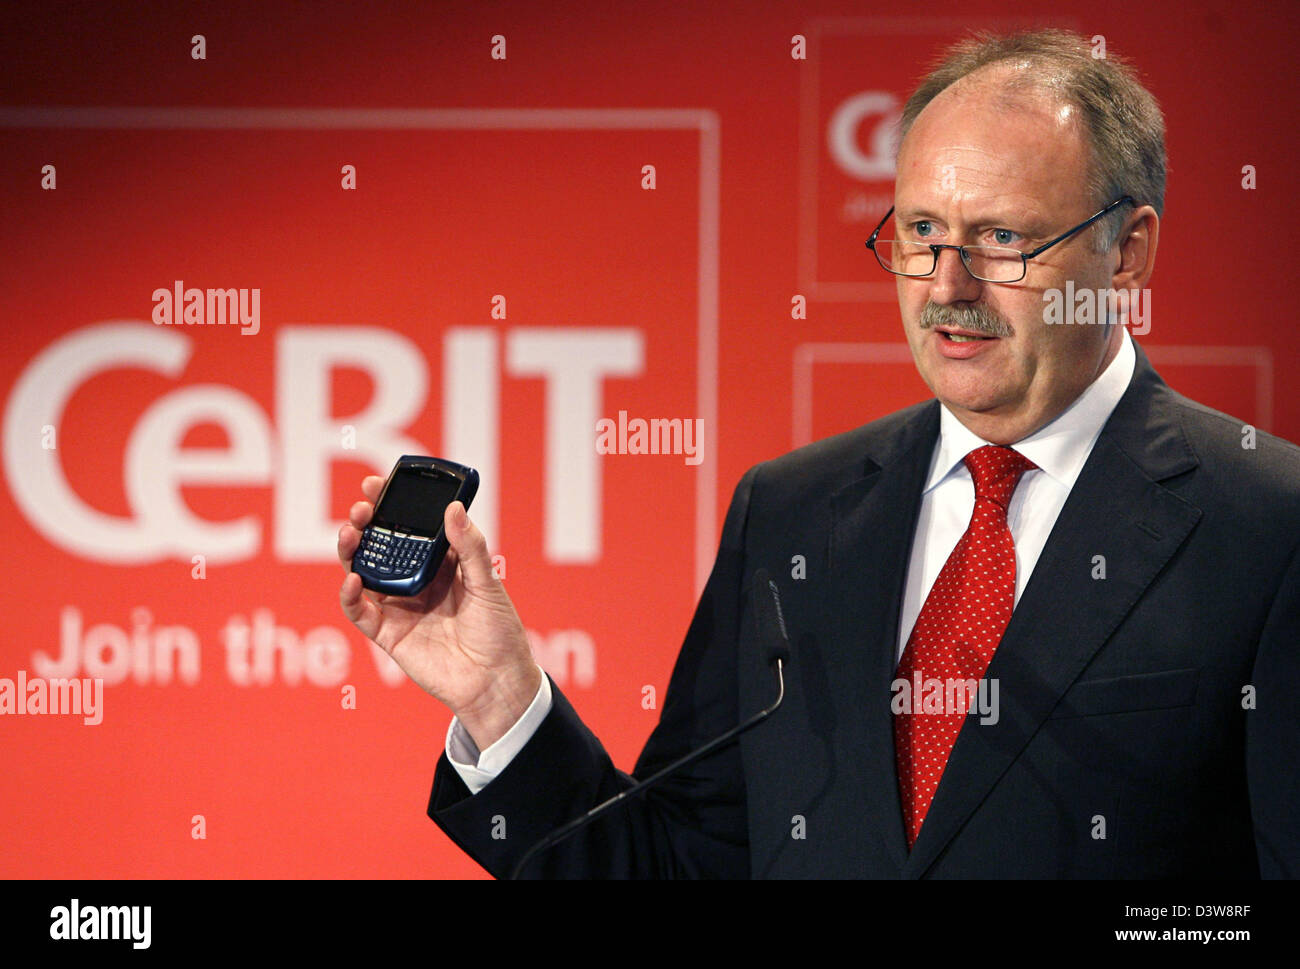 Ernst Raue, the CeBIT-director and member of the board of the 'Deutsche Messe AG Hanover', gestures at press conference in front of the CeBIT logo in Hanover, Germany, Tuesday, 23 January 2007. The computer trade fair CeBIT (15th to 21st March 2007) will record a major decrease in exhibition space due to the cancellations of big companies such as Nokia and Motorola. The trade fair' Stock Photo